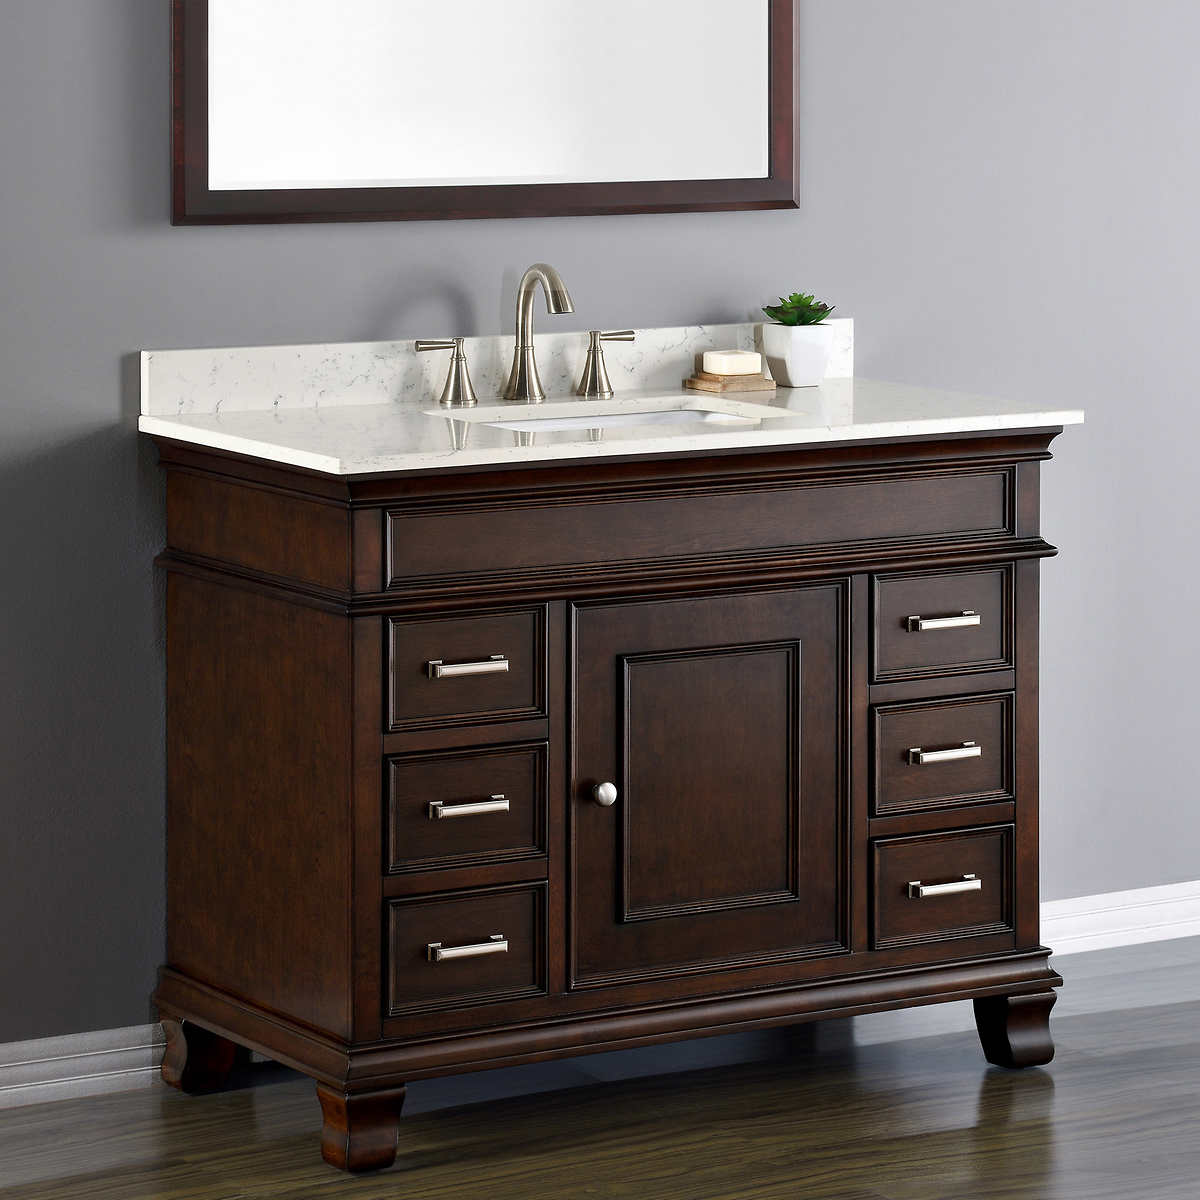 42 Inch Bathroom Vanity Vanities  Costco